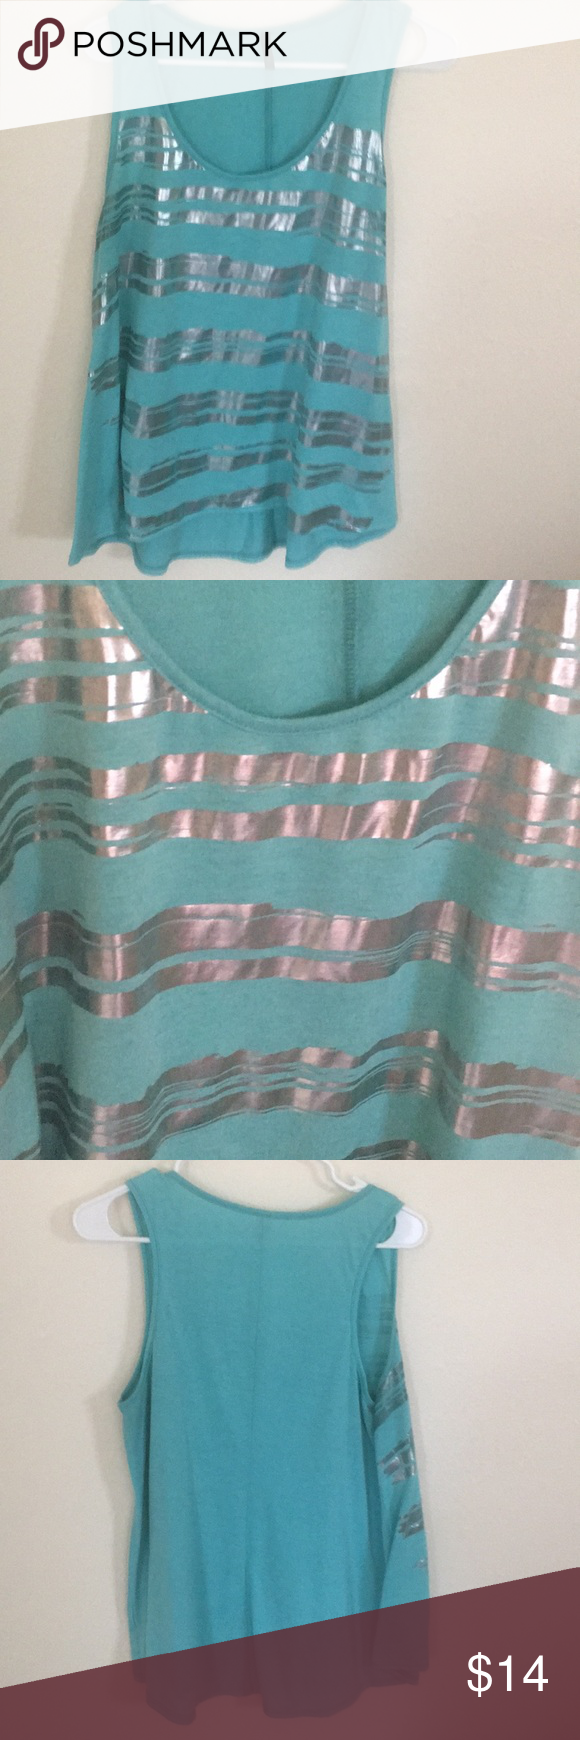 544de8fde60d Candy Rain tank top size 2X Fun and festive tank top in like new condition. Mint  green in color with silver streaks. Very cute! Tops Tank Tops